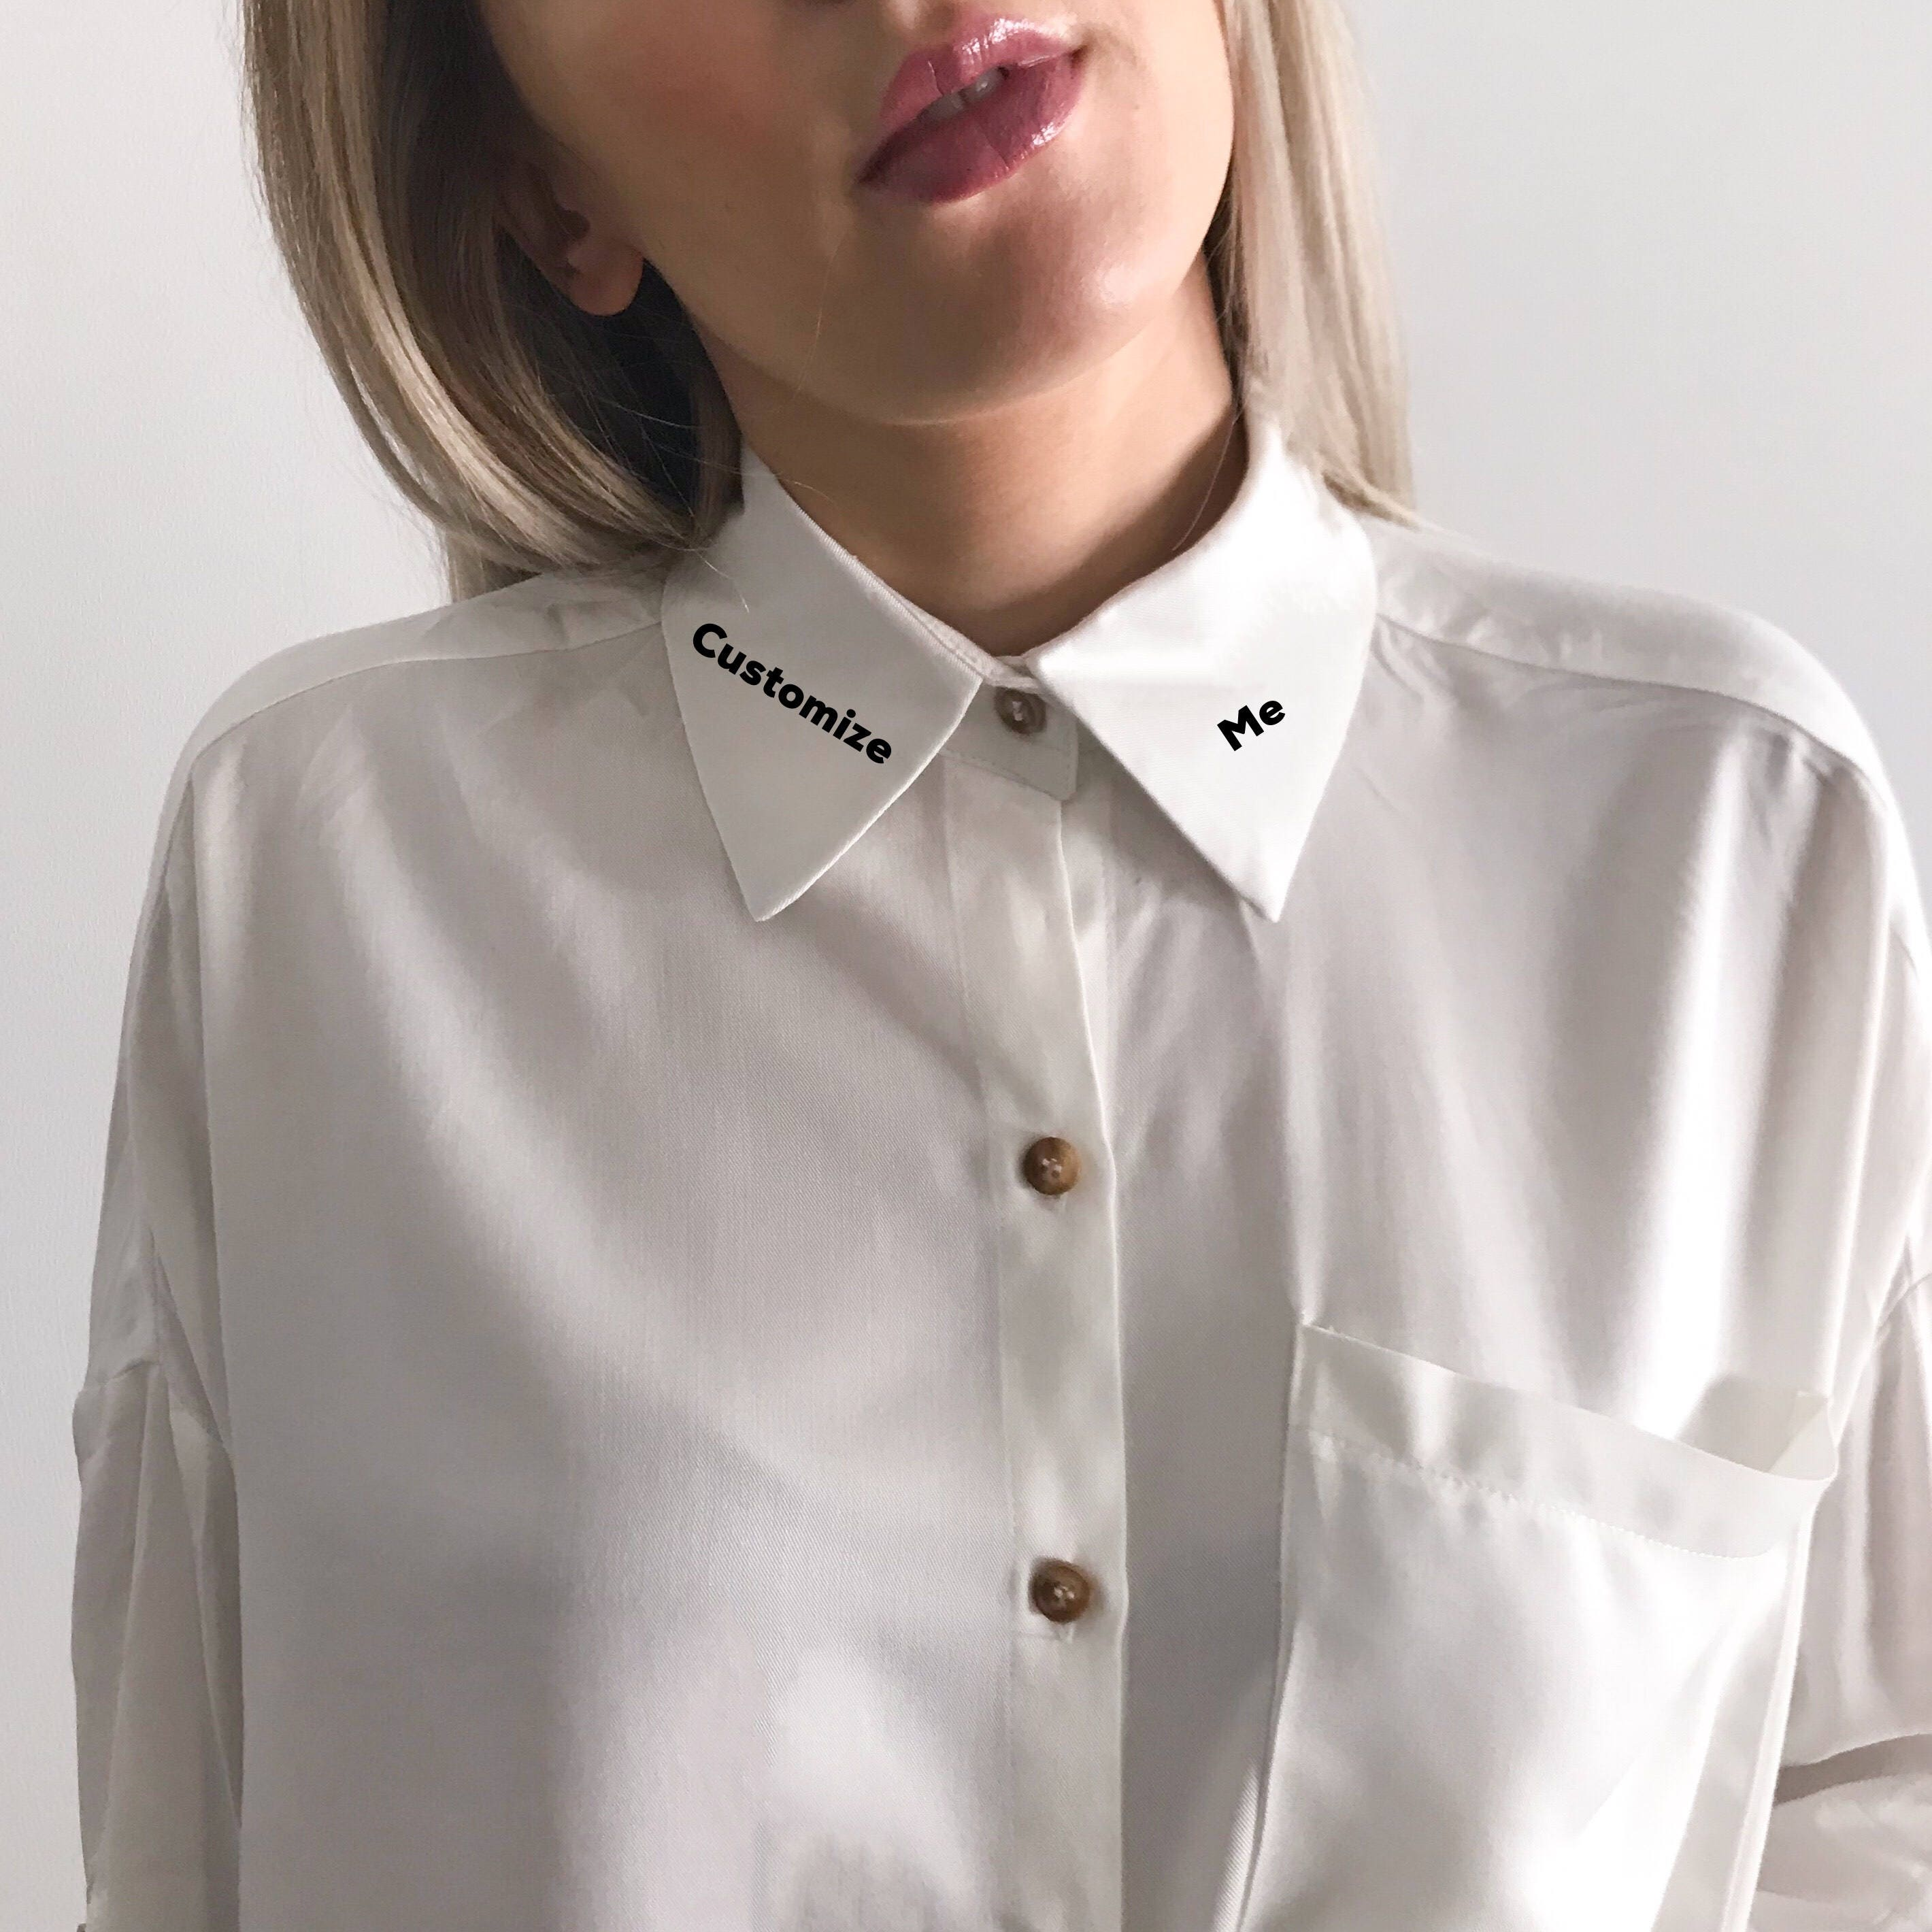 Custom Embroidered Collar Shirt Embroidered Shirt Etsy